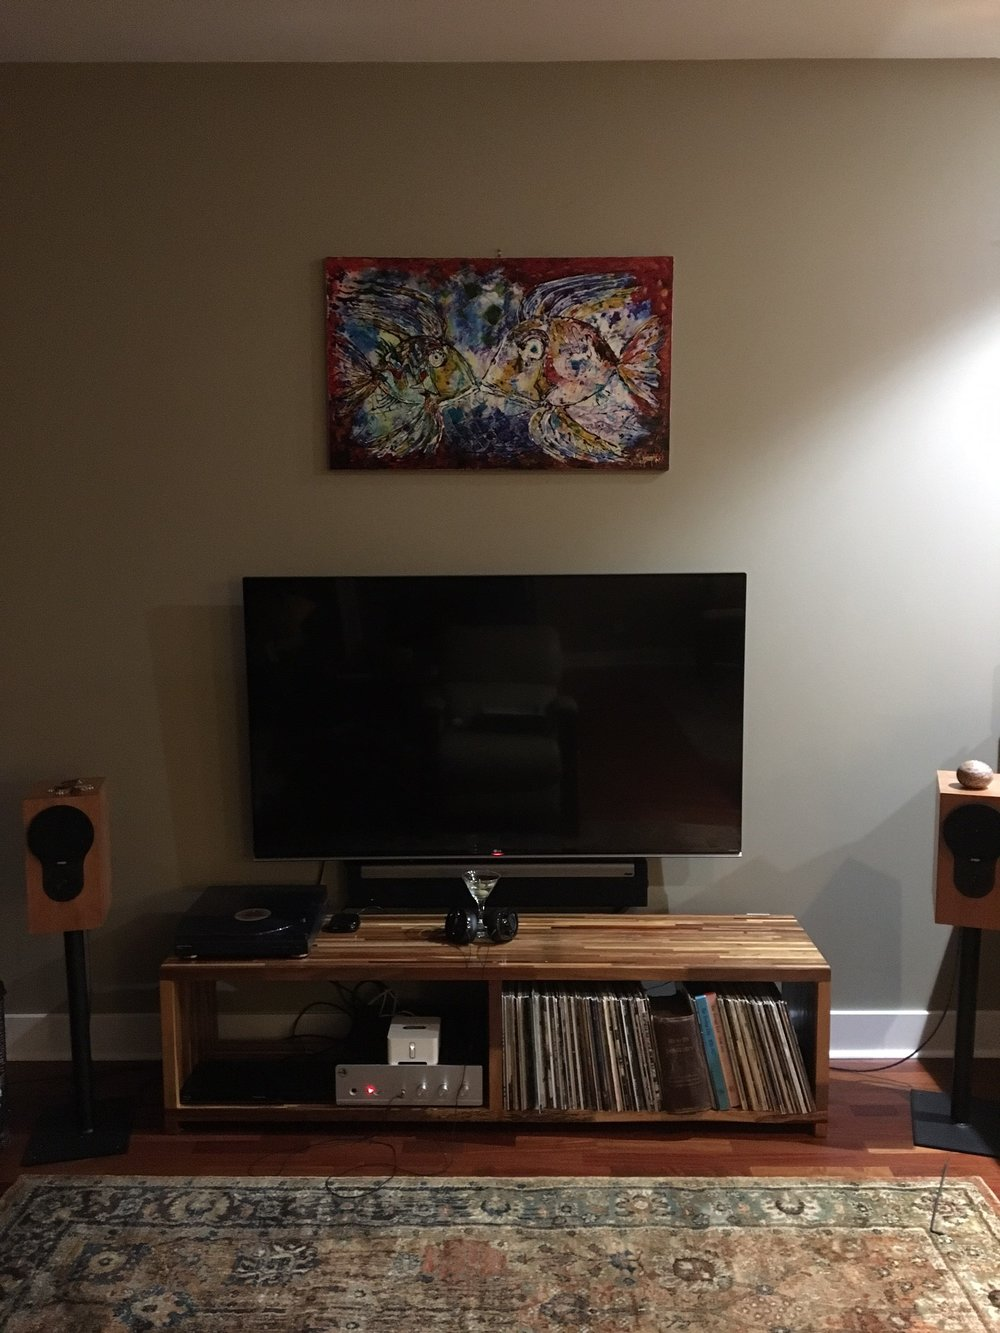 Chris C System : Rogue Audio Sphinx hybrid integrated, turntable, Sonos connect, Rega RX1 speakers on GHA stands, custom GHA mahogany table, AudioQuest Nighthawk headphones.  Radical.